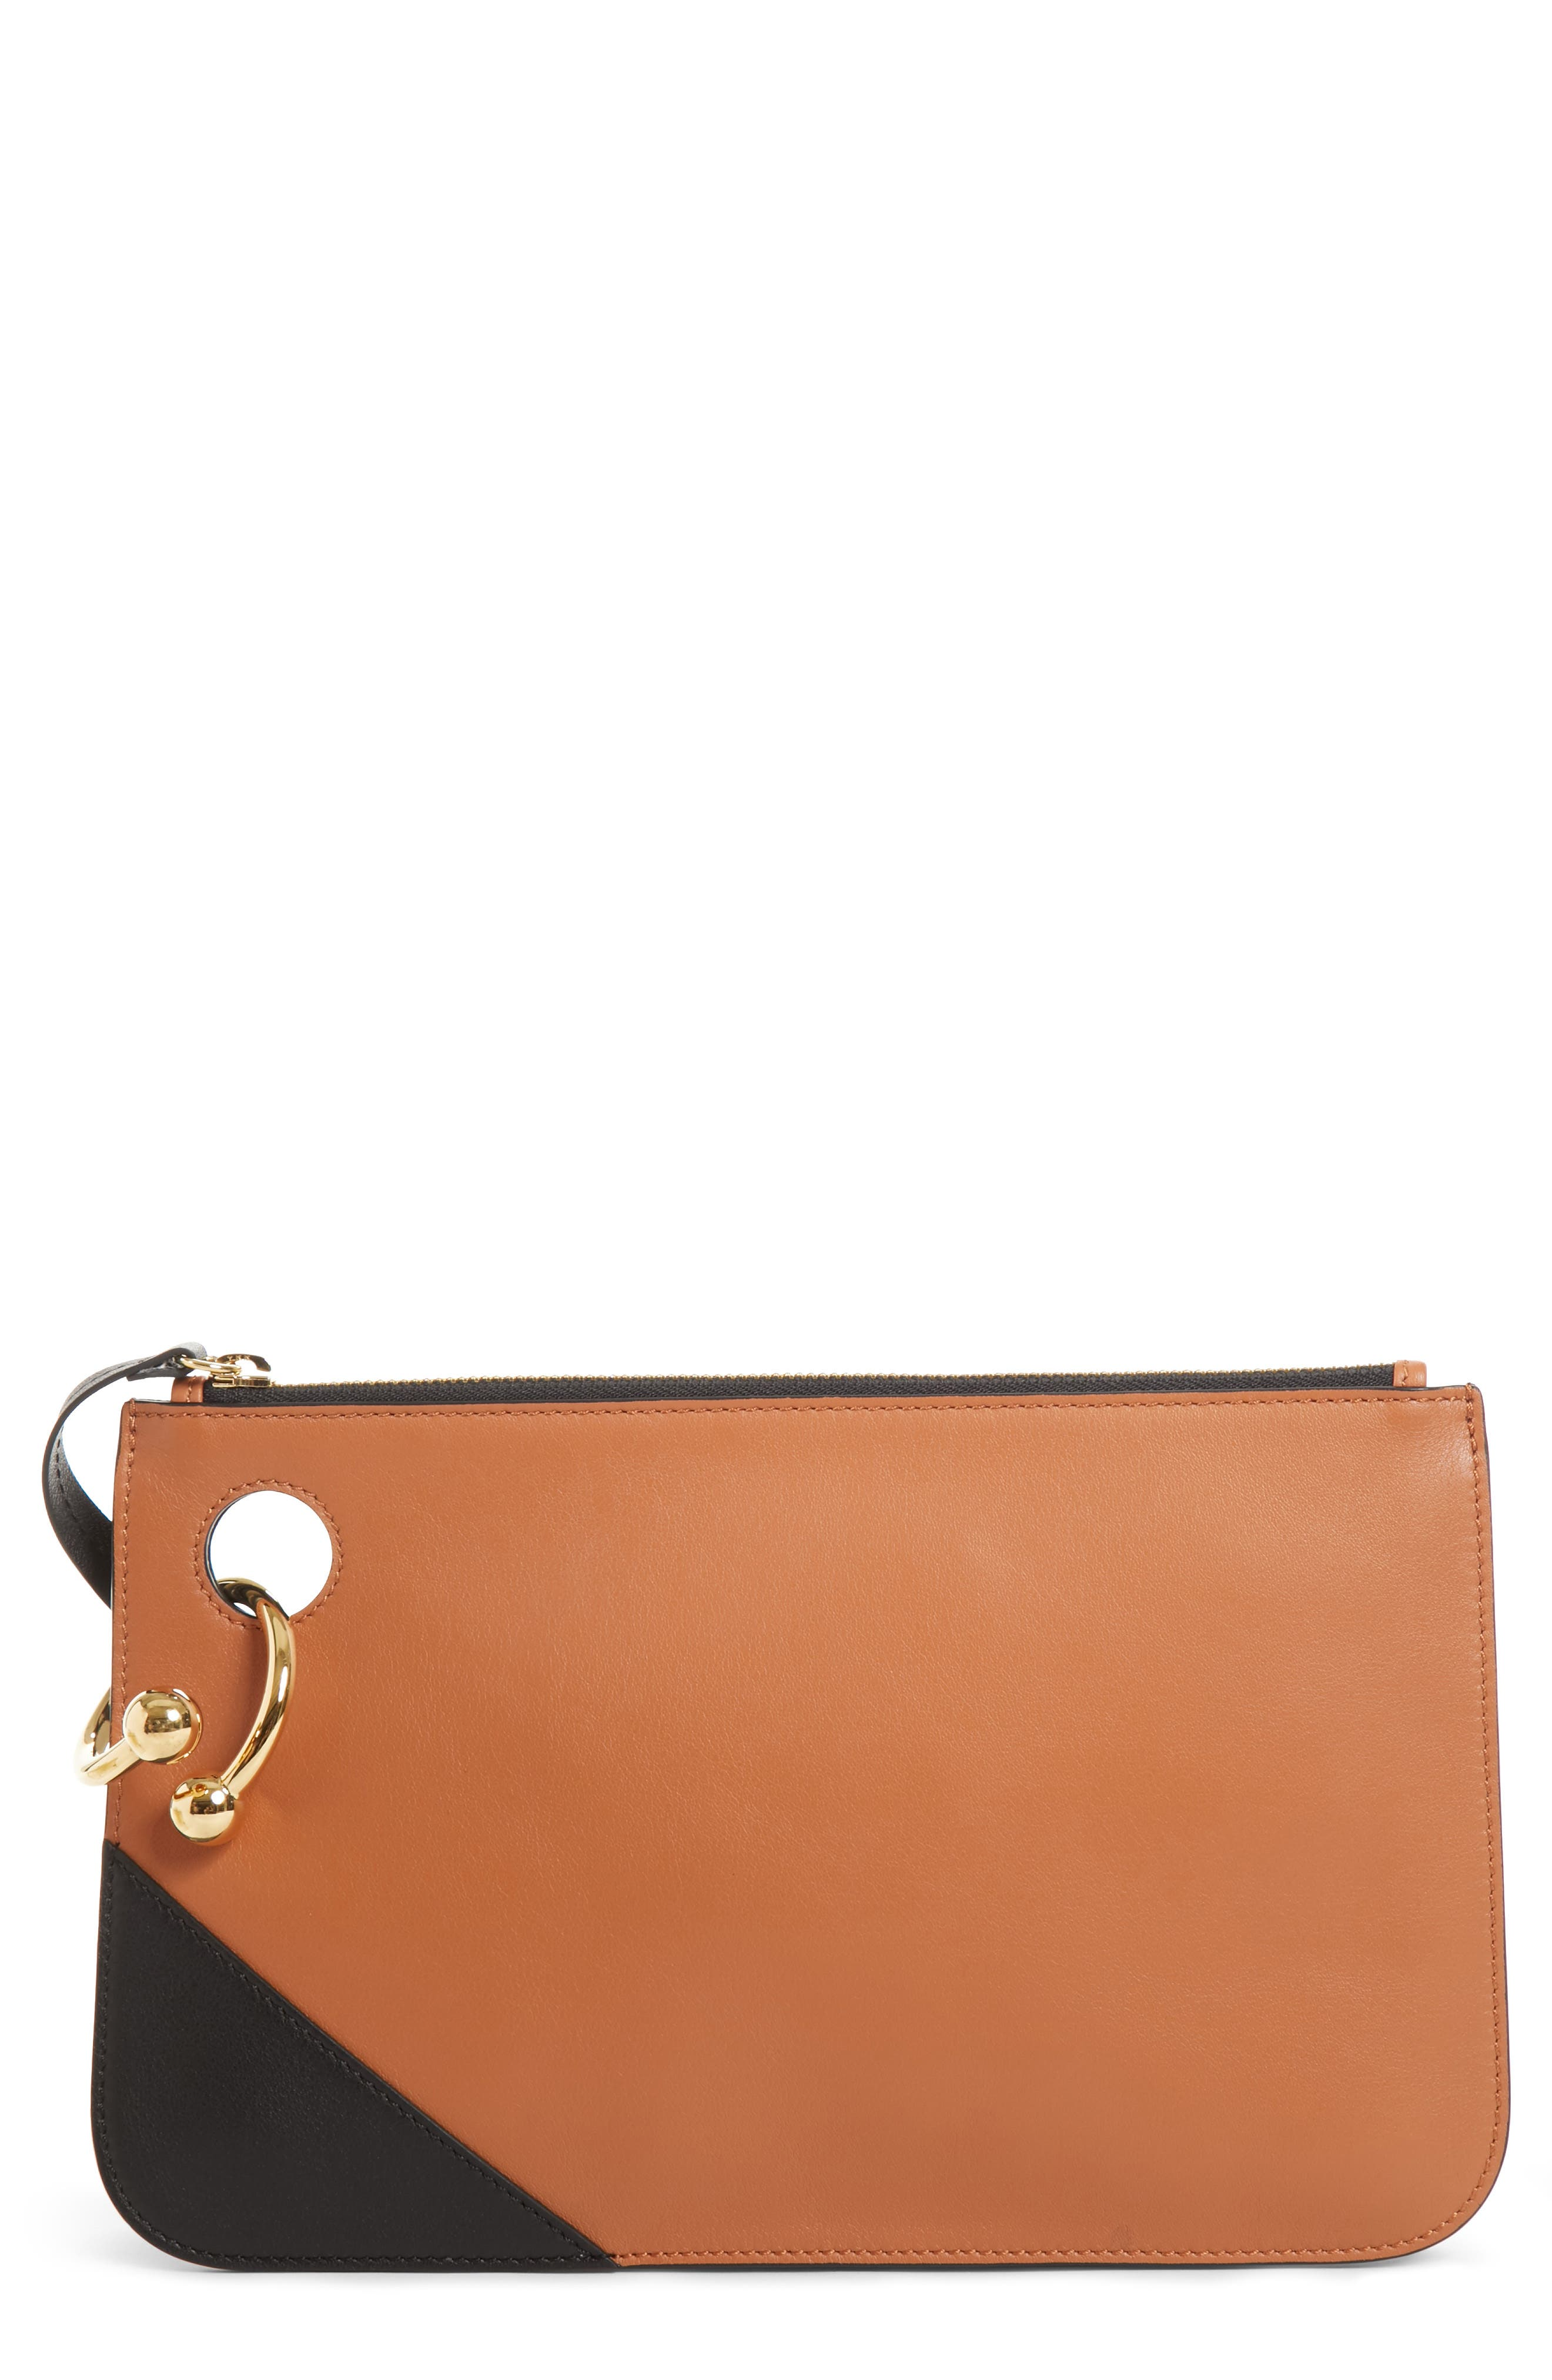 Alternate Image 1 Selected - J.W.ANDERSON Pierce Colorblock Leather Clutch